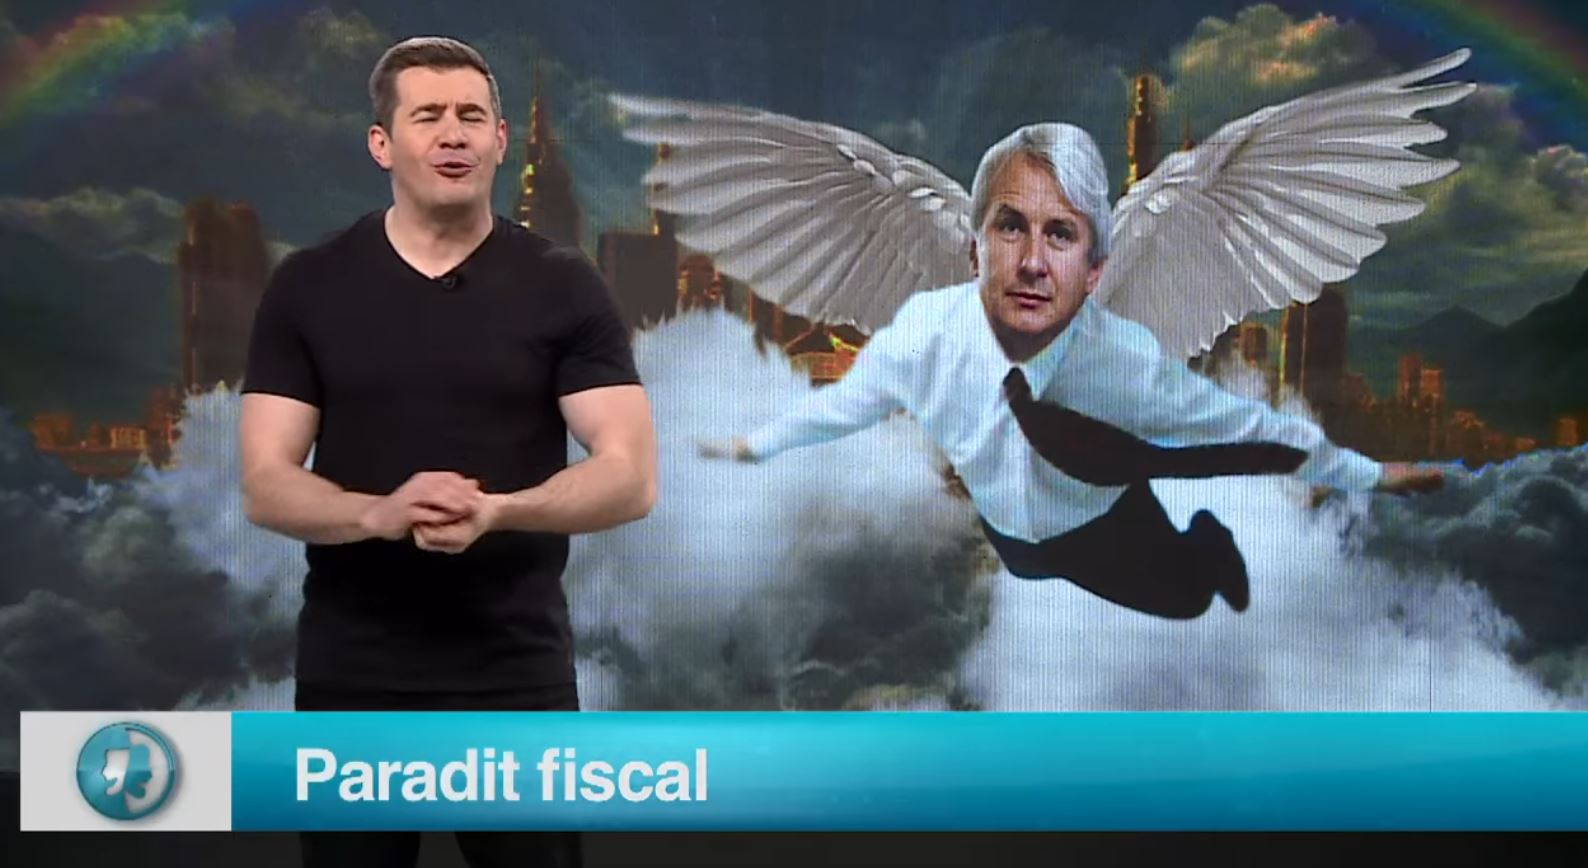 Paradit fiscal